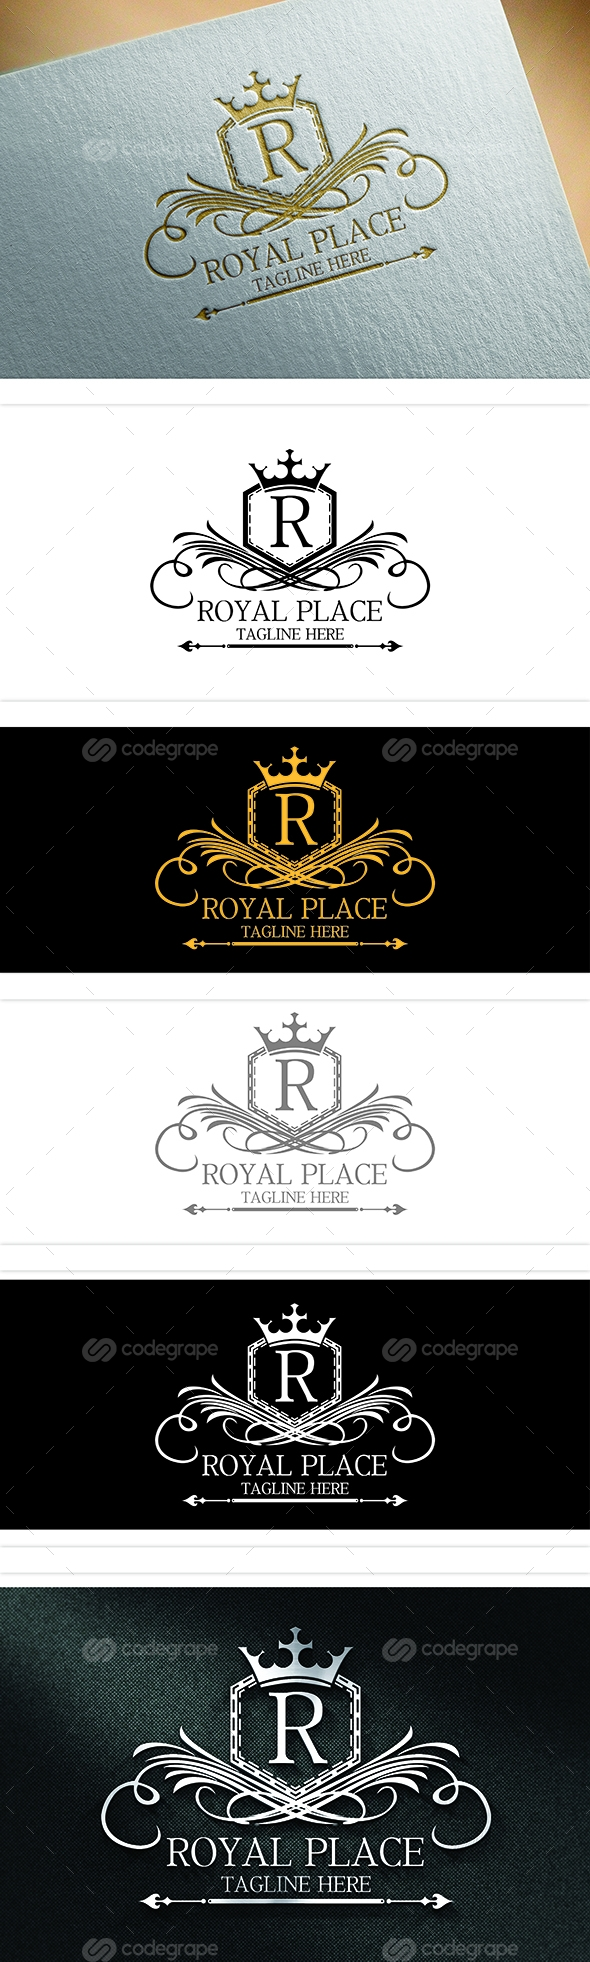 Royal Place Logo Template